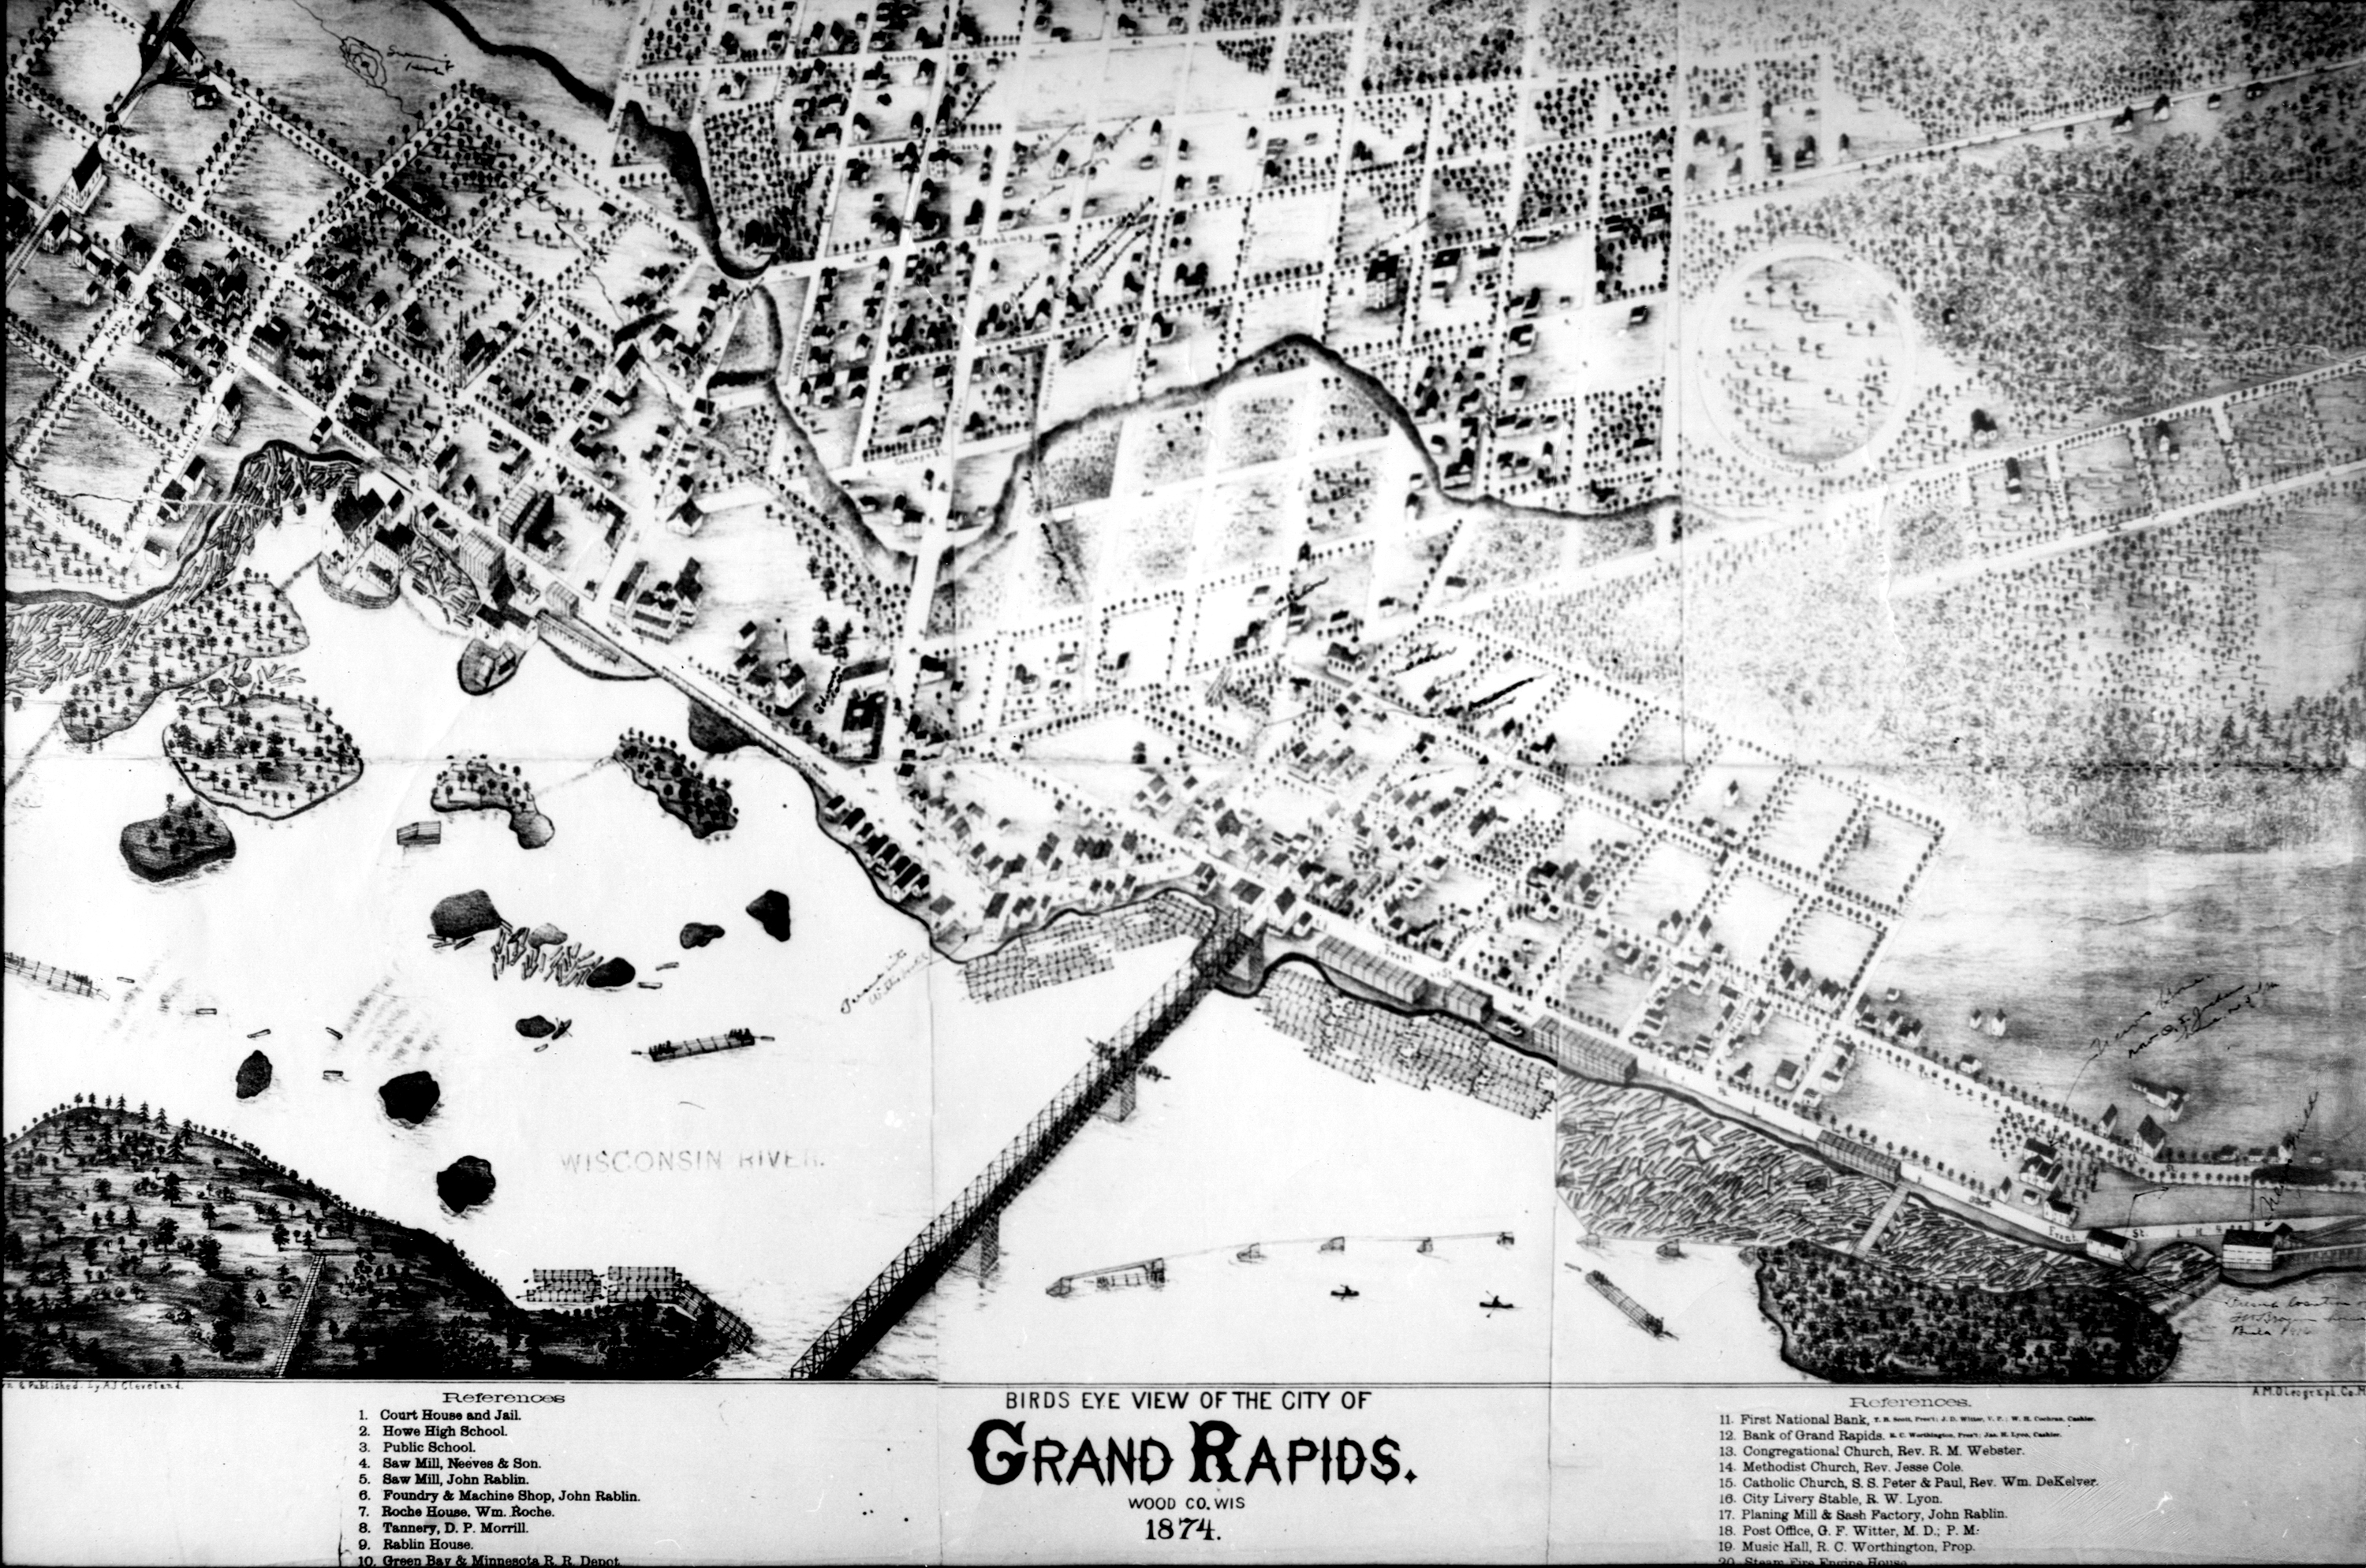 Birds Eye View Of The City Of Grand Rapids Wood Co Wis 1874